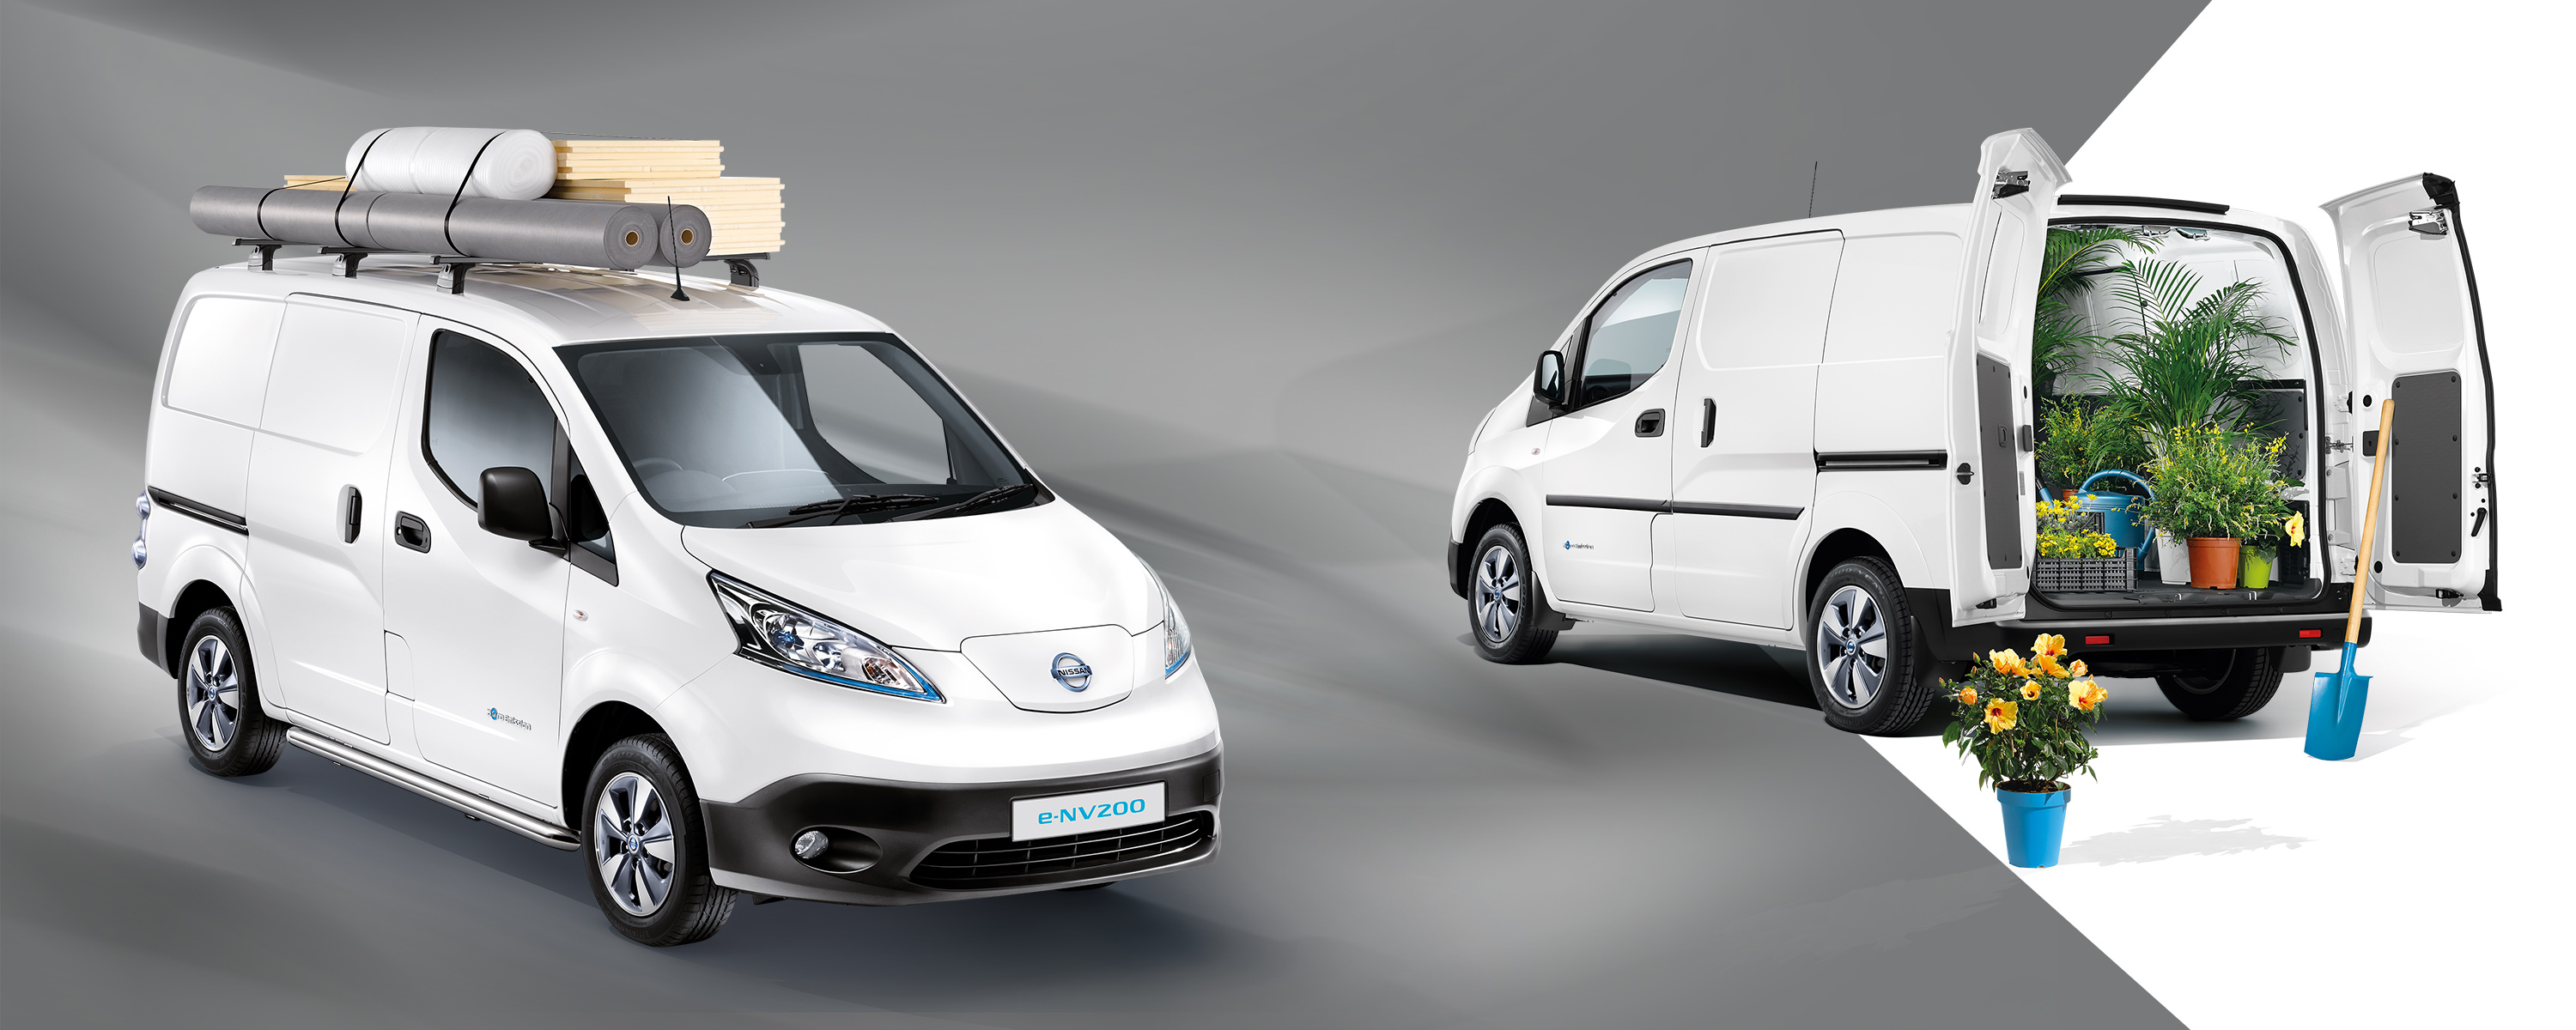 New Nissan e-NV200 VAN interior and exterior design preview image